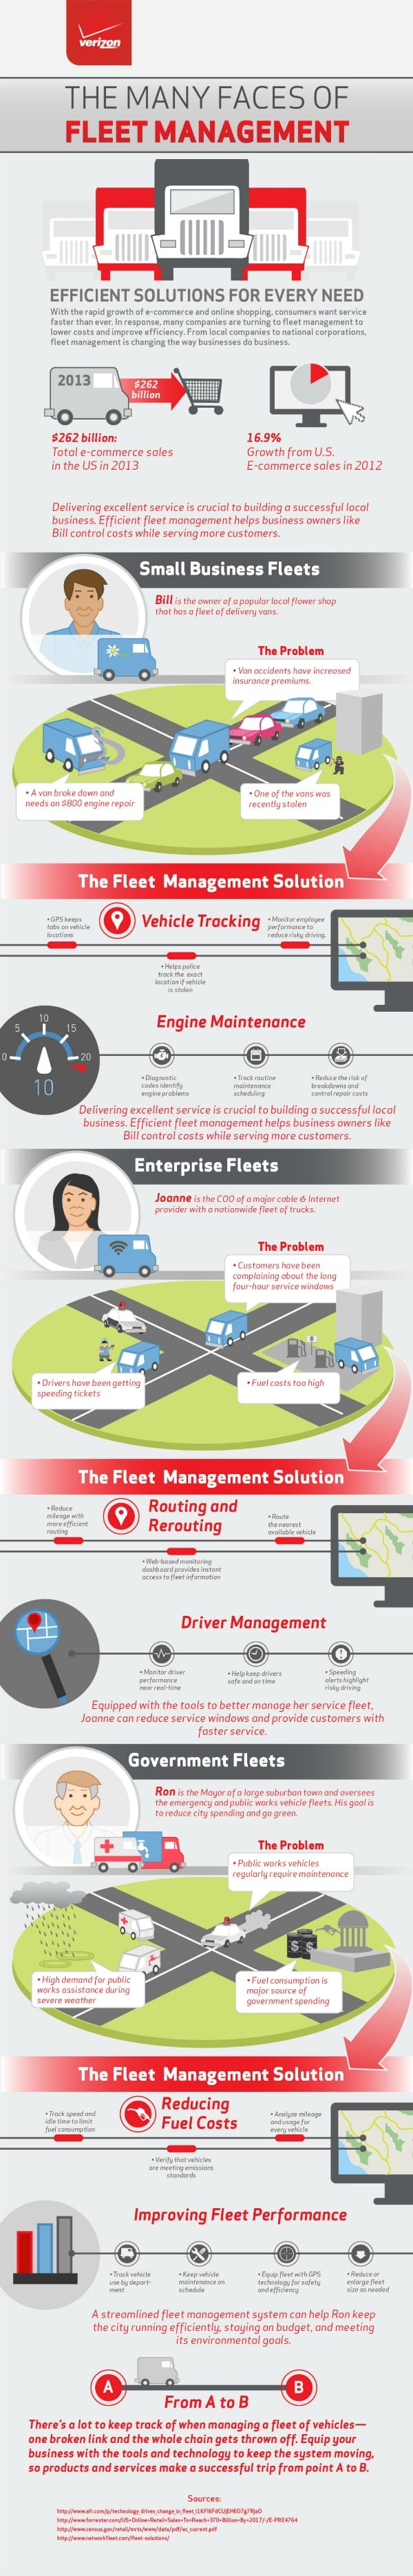 How Fleet Management Software Works - Infographic